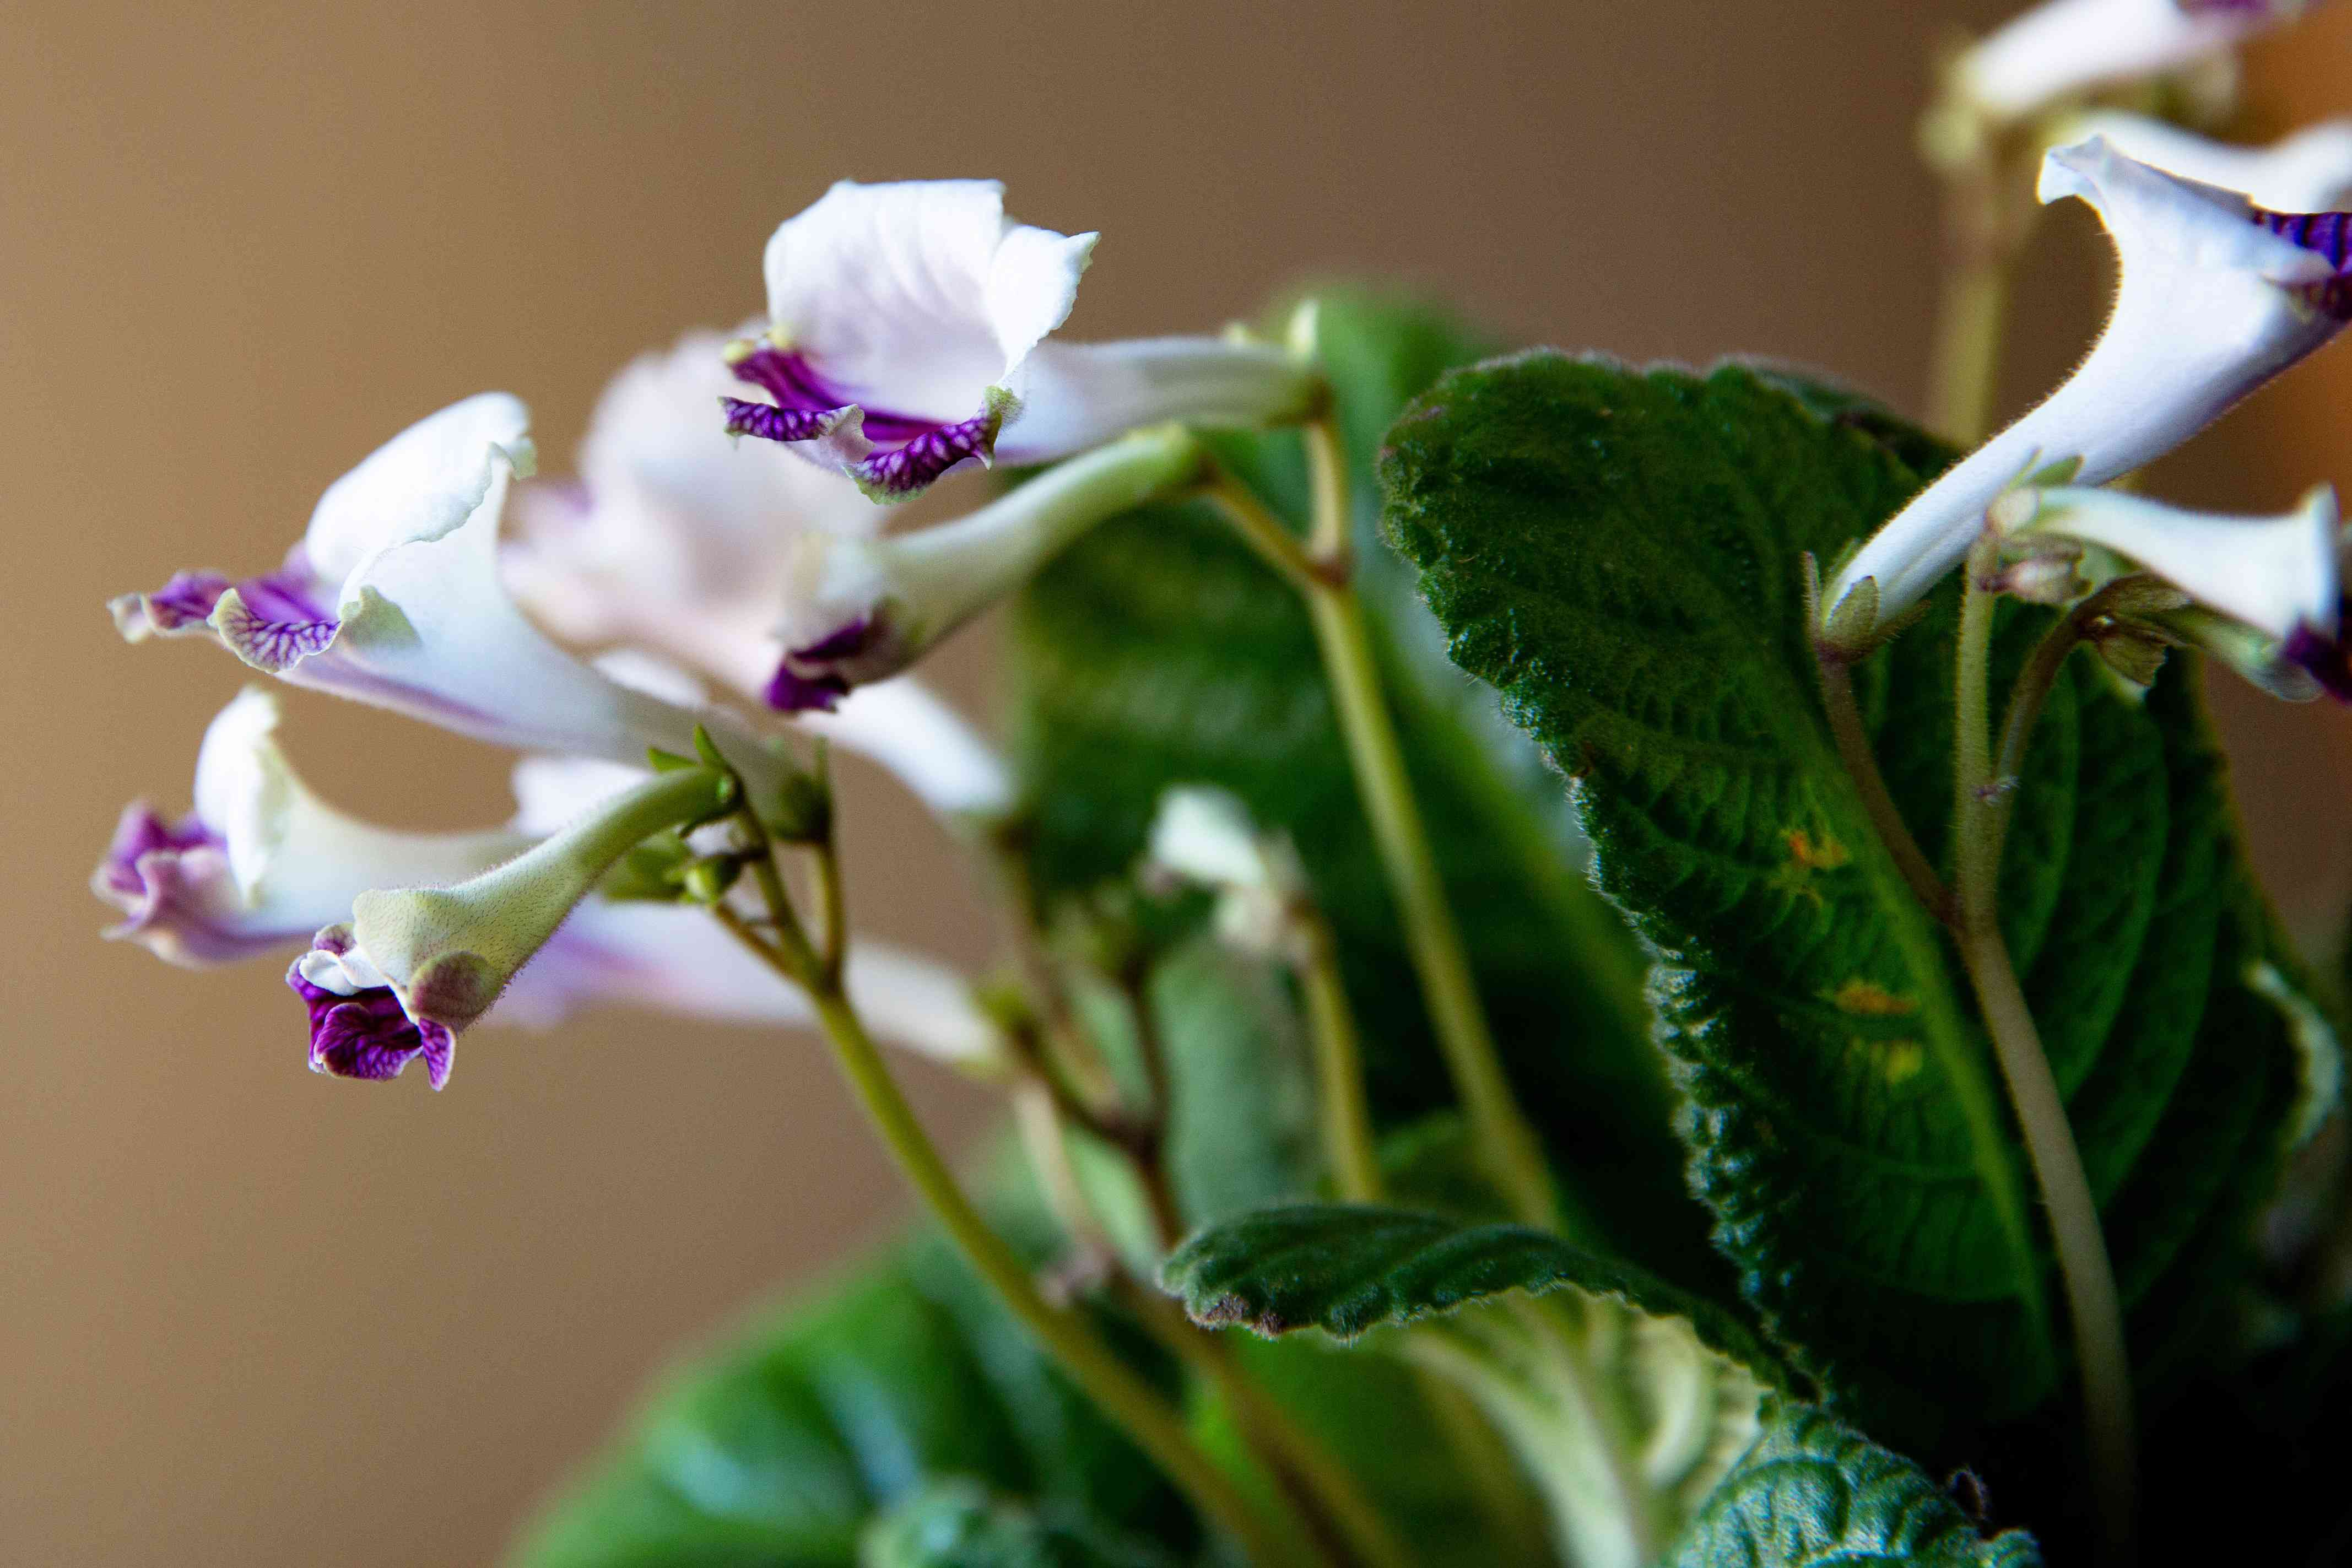 Streptocarpus plant with white and purple flowers and buds with leaves closeup